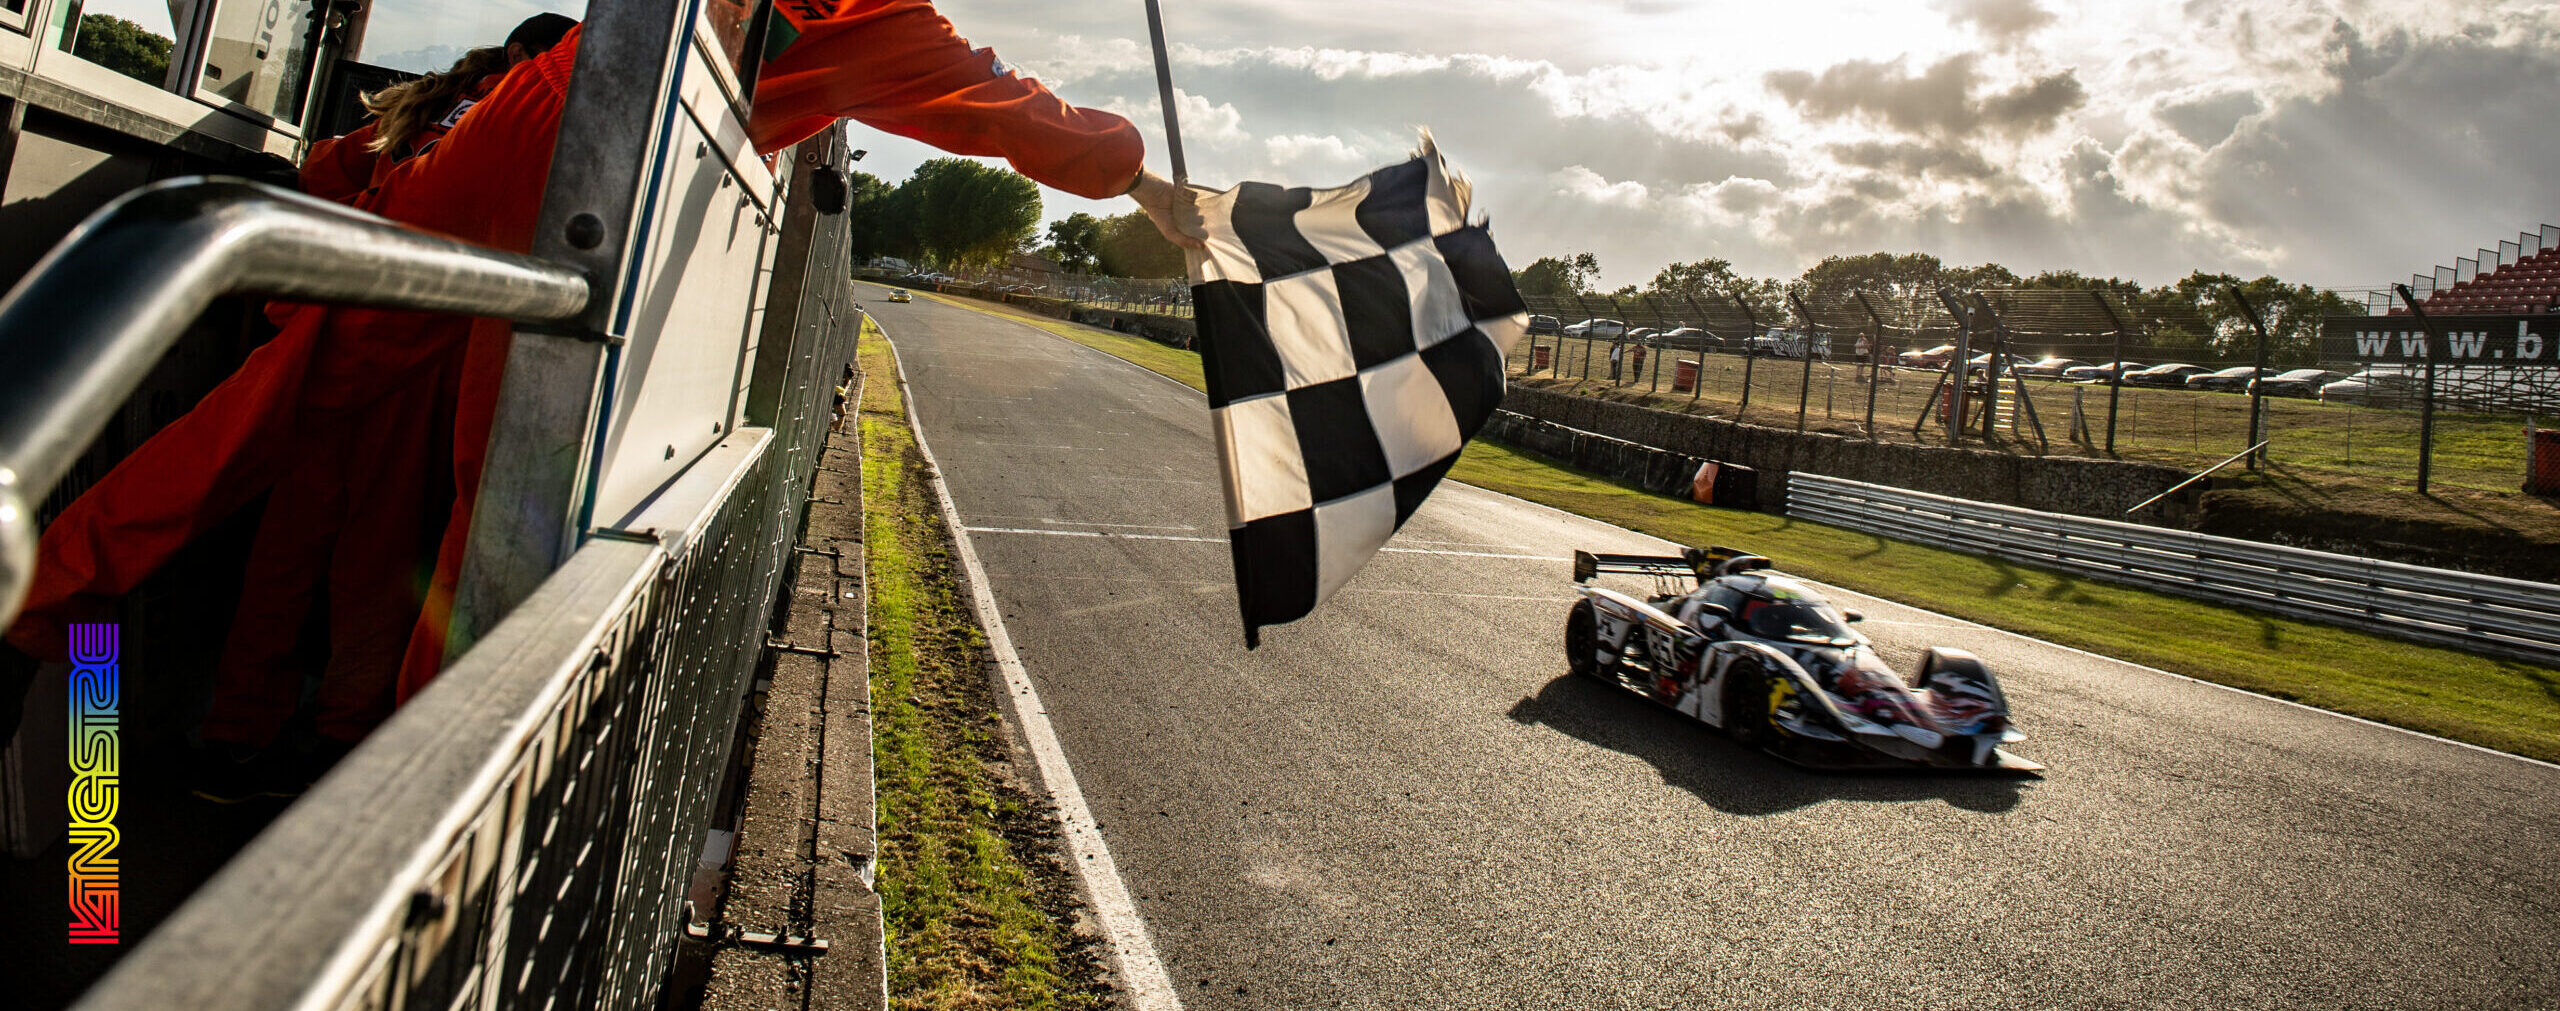 Praga | Brands Hatch double-take for Praga - R1T Evo scores P1 and P2 in Britcar Endurance races 1 and 2